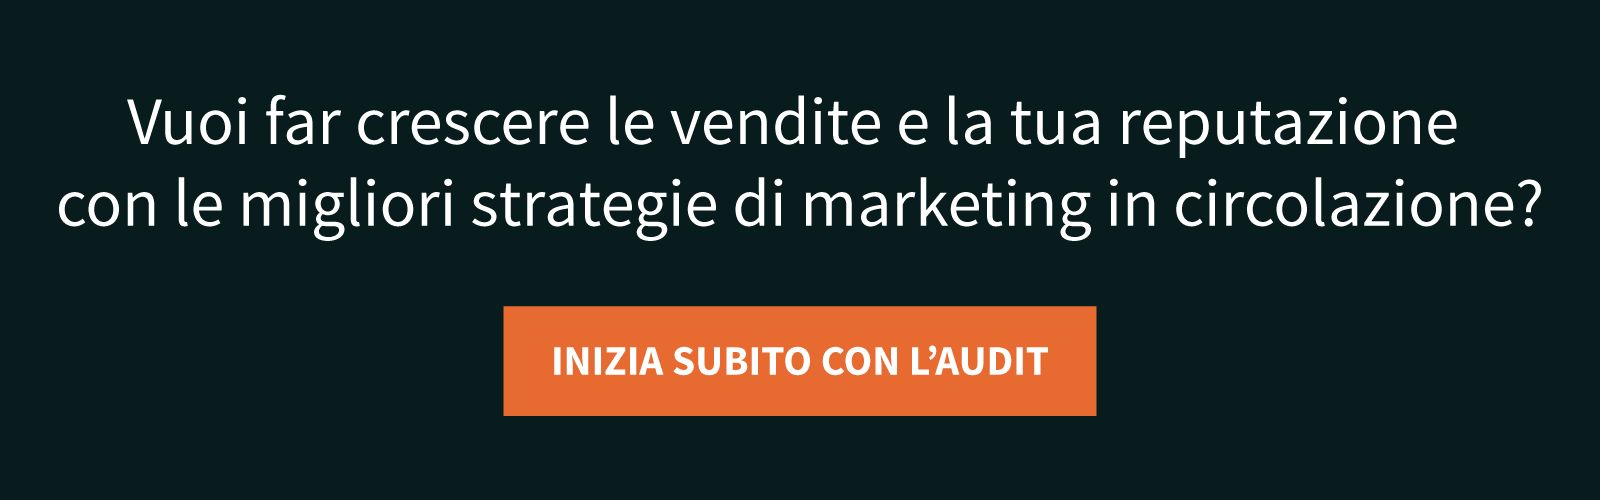 consulenza-gratuita-marketing-industriale